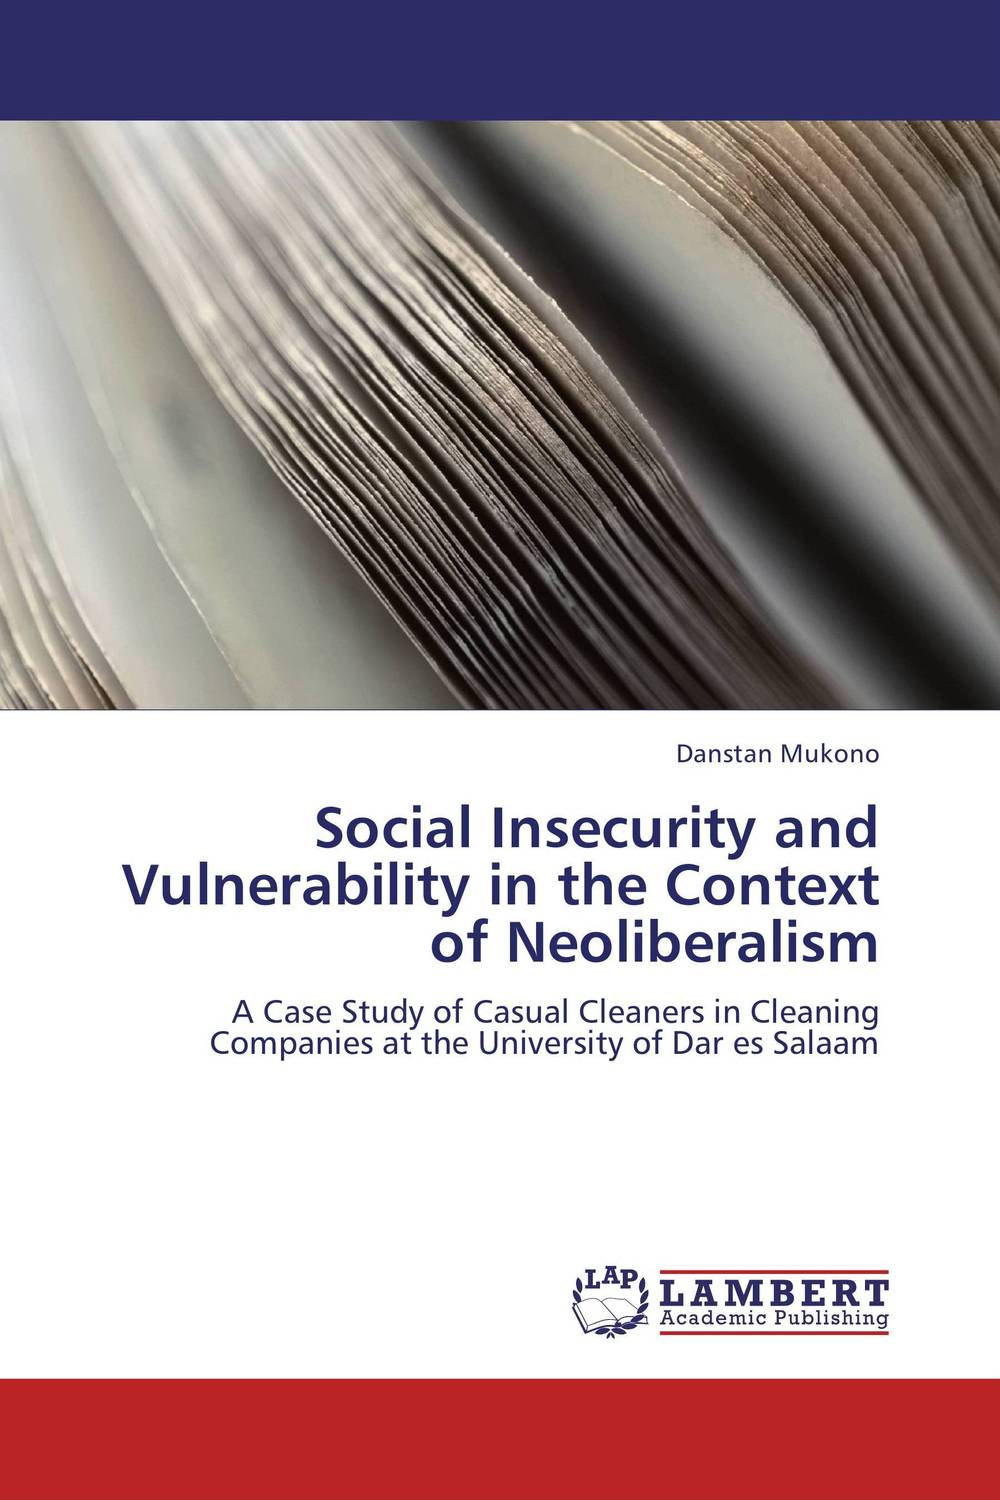 Social Insecurity and Vulnerability in the Context of Neoliberalism linguistic diversity and social justice